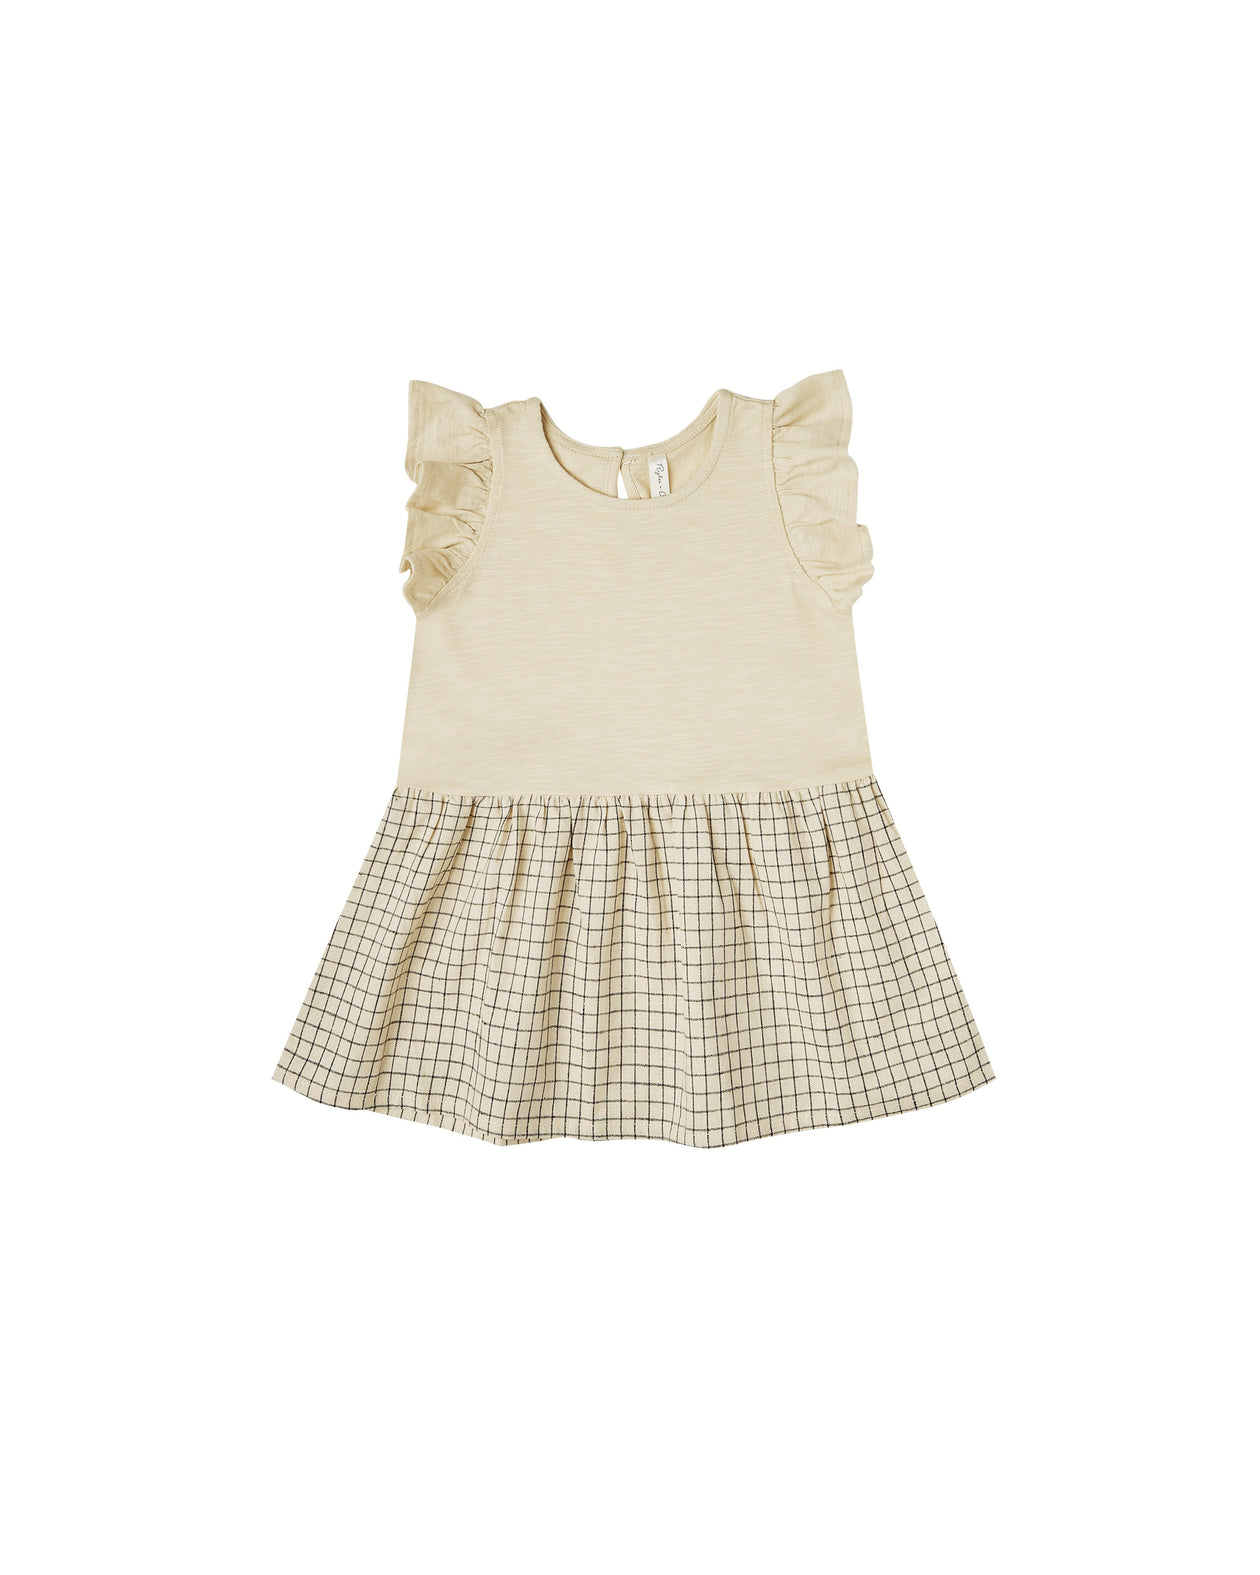 The Rylee & Cru Grid Coury Dress Butter